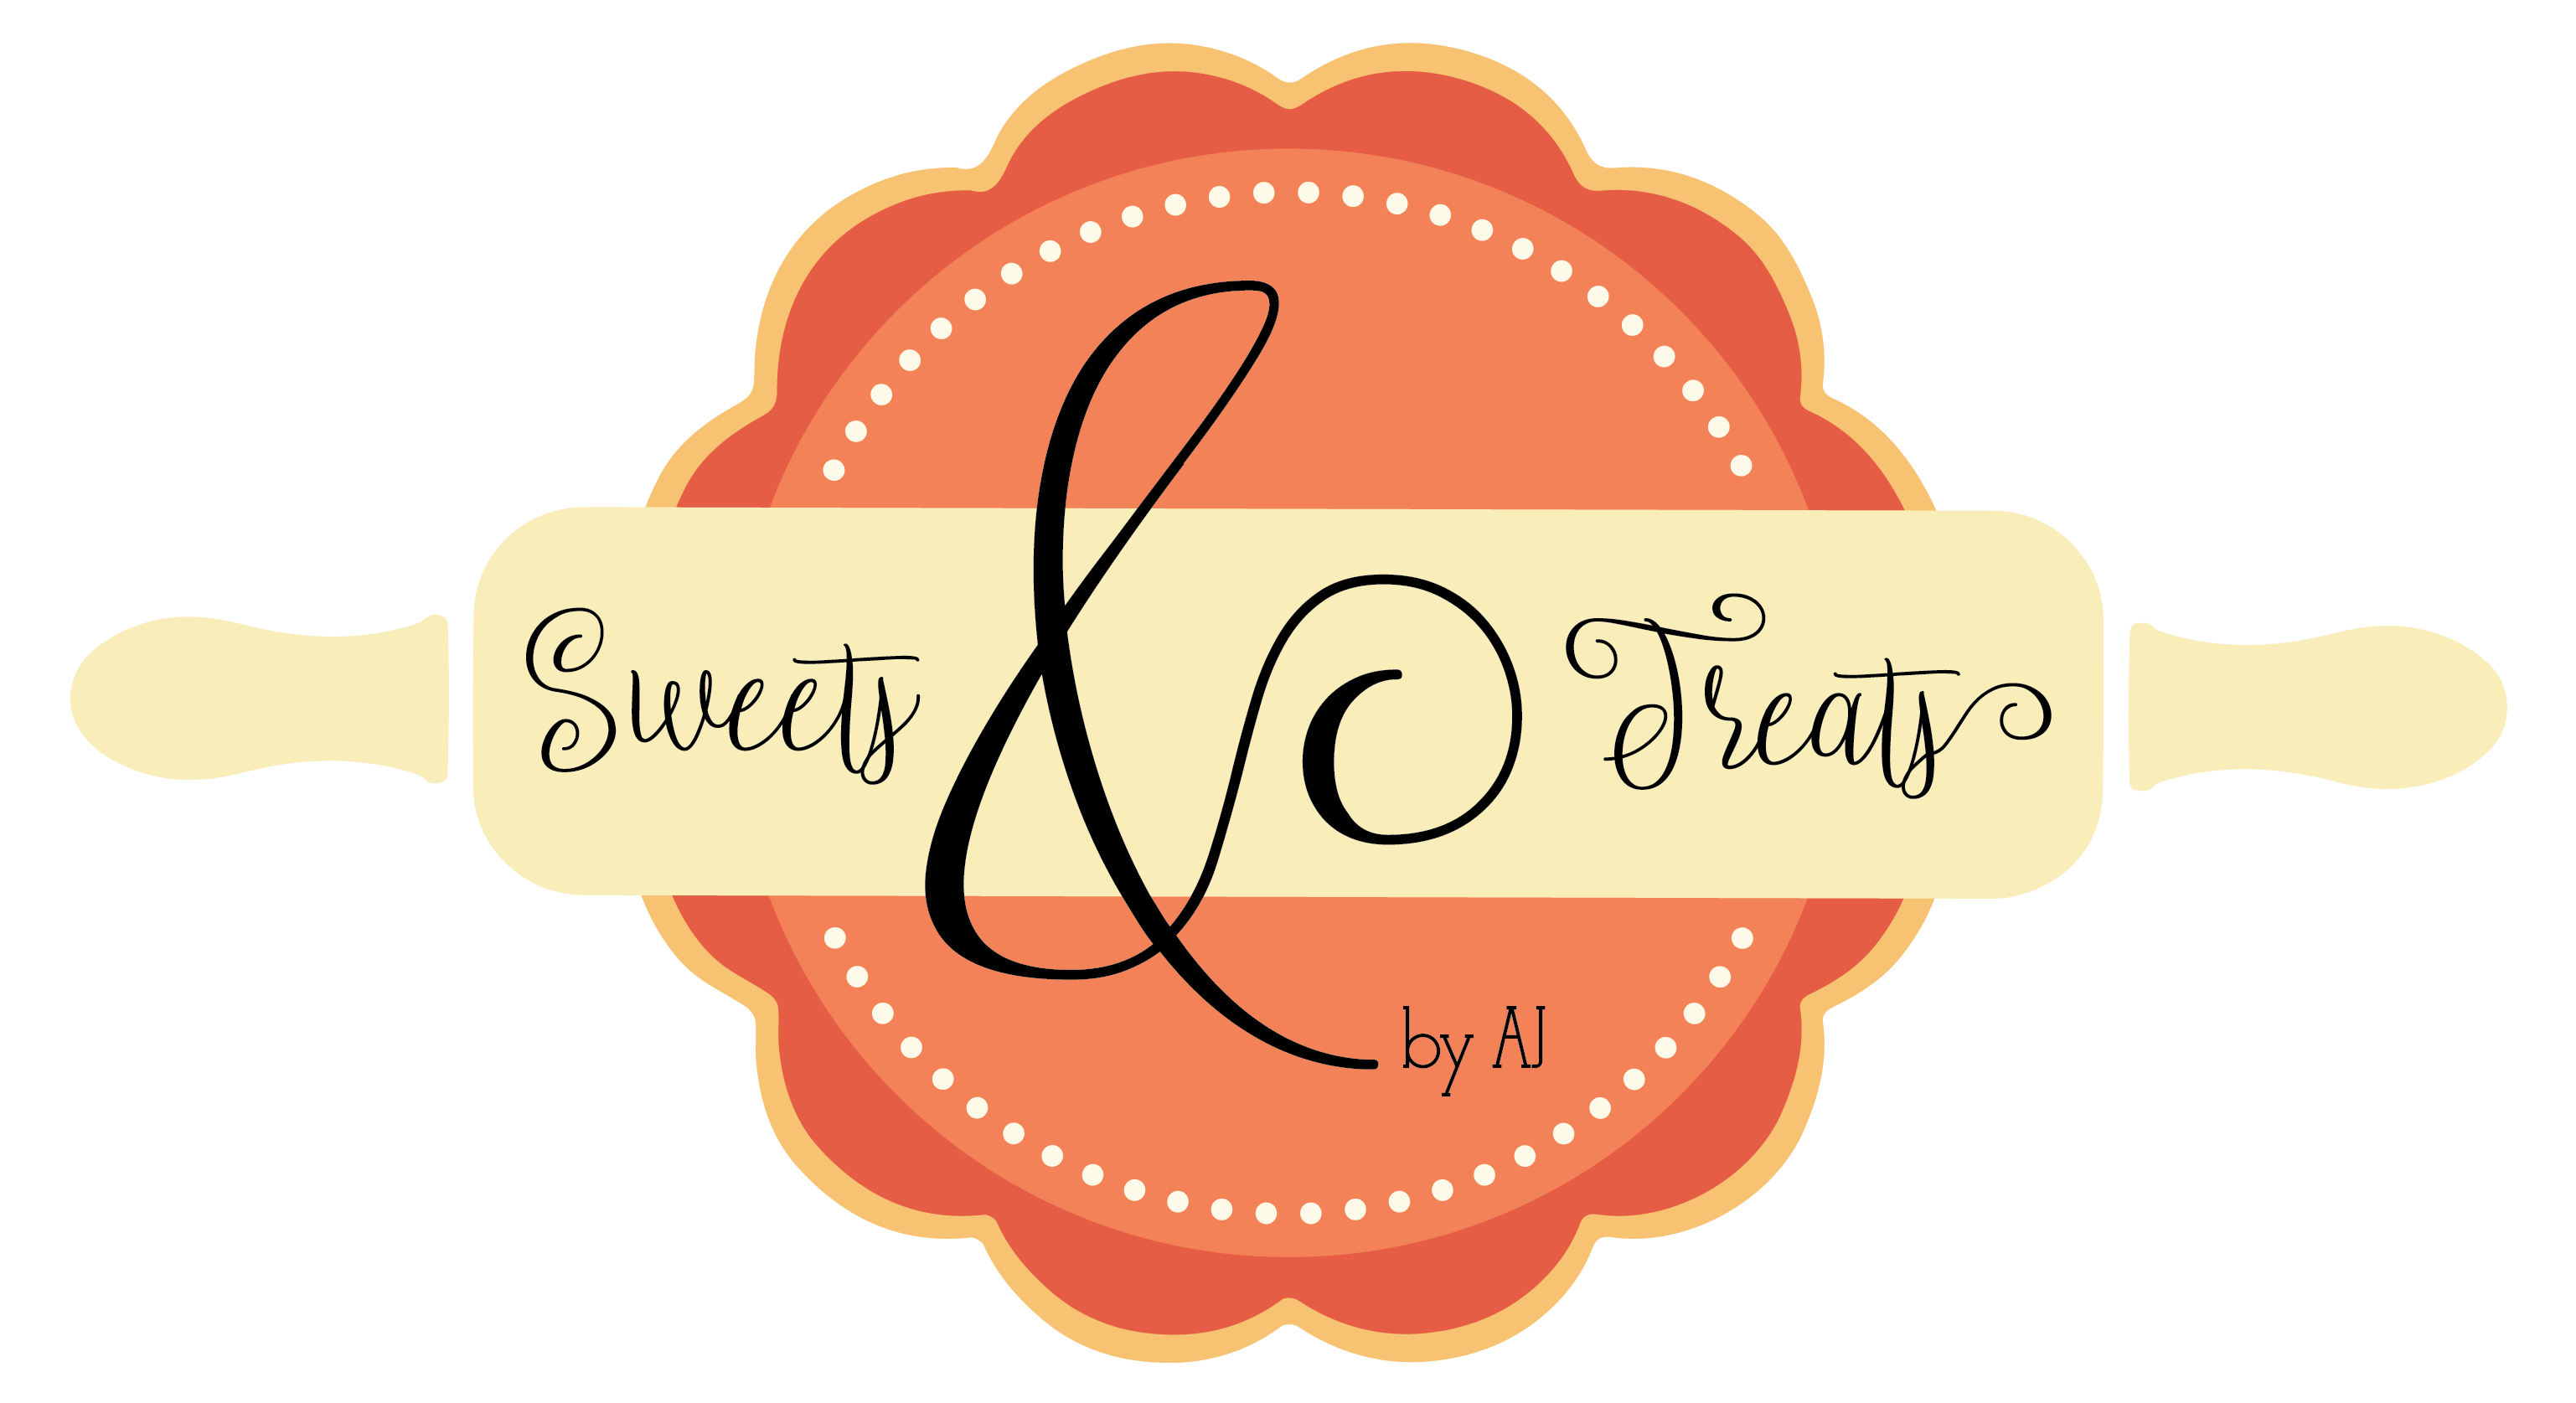 Sweets and Treats By AJ